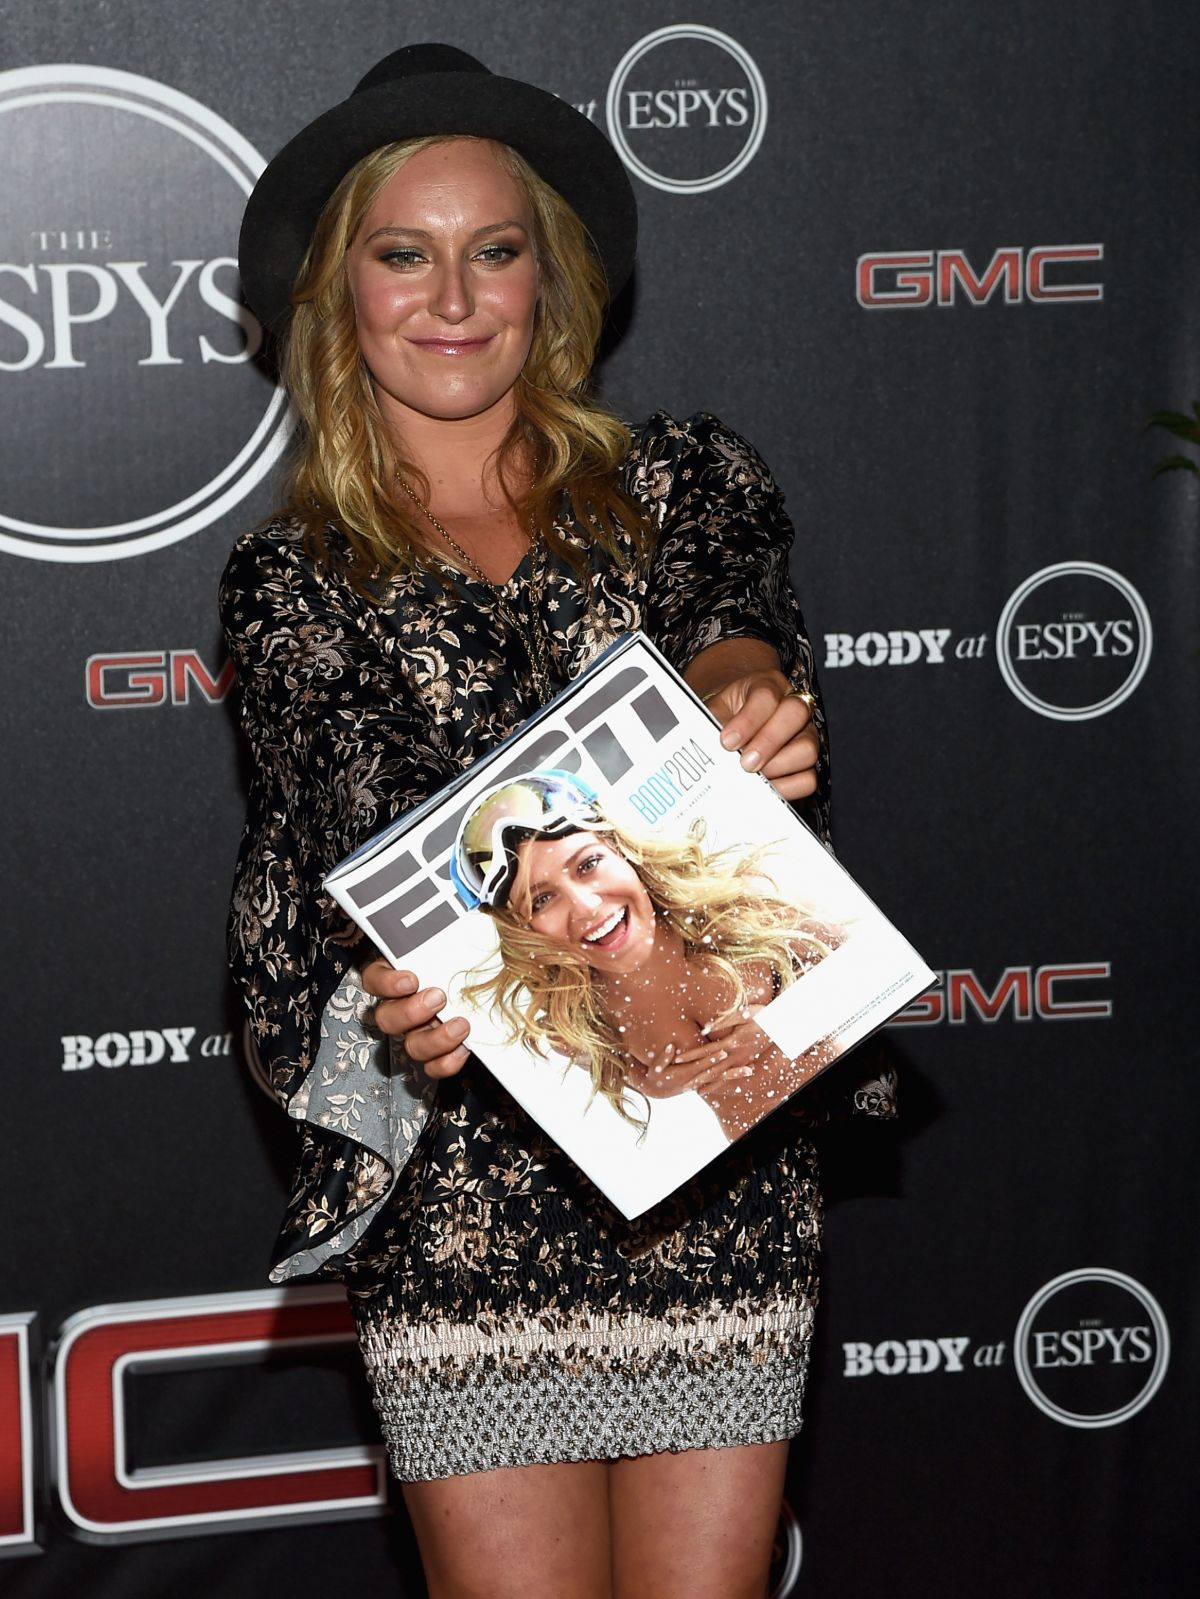 JAMIE ANDERSON at ESPN Presents Body at ESPYS